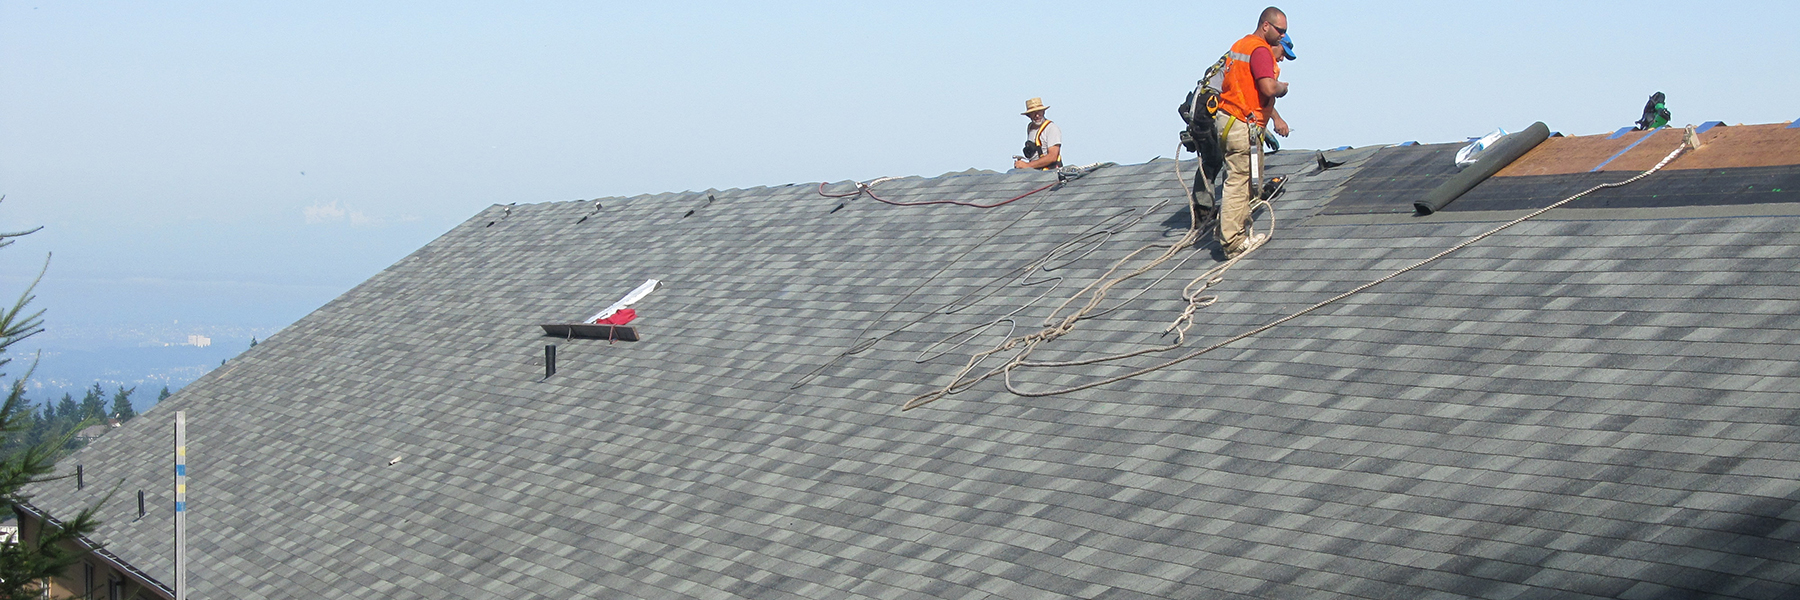 photo_roofers_1